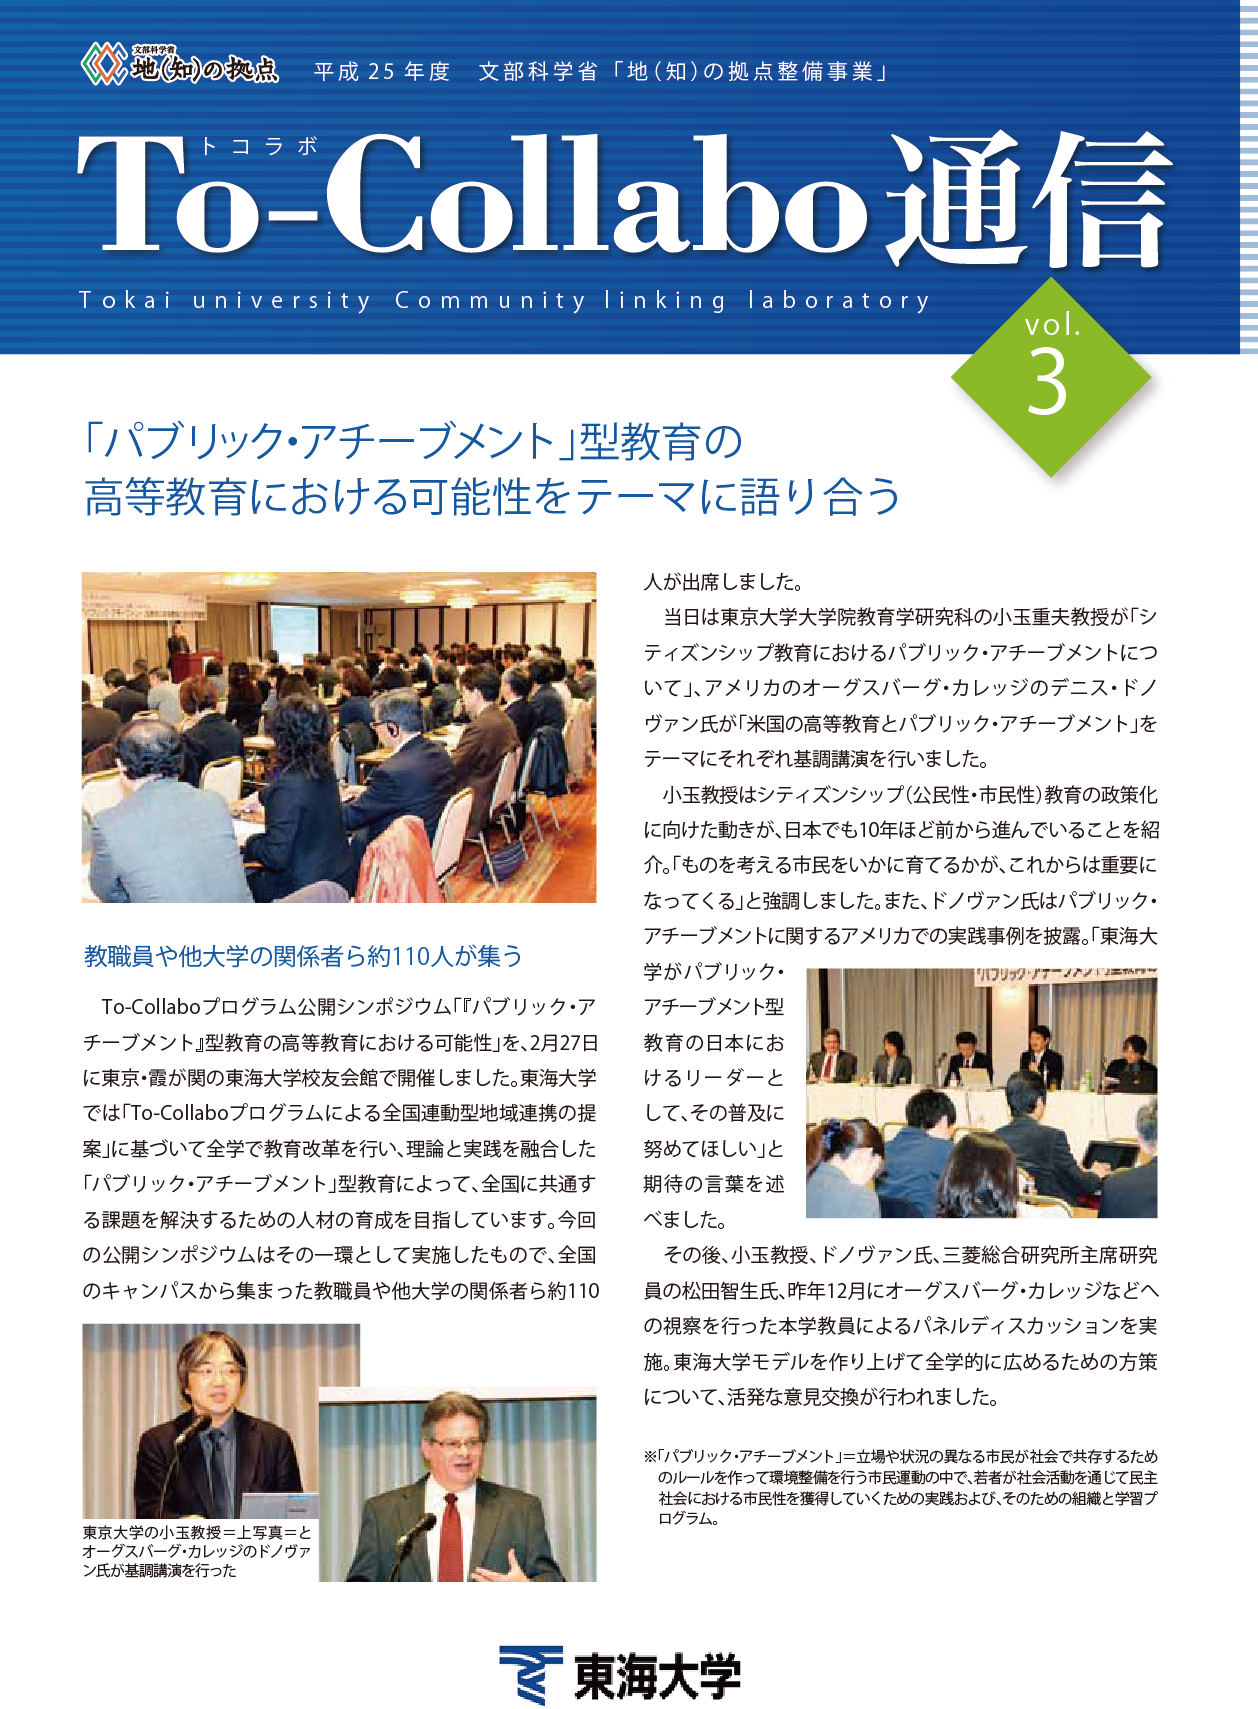 to-collabo-news_vol.5_01